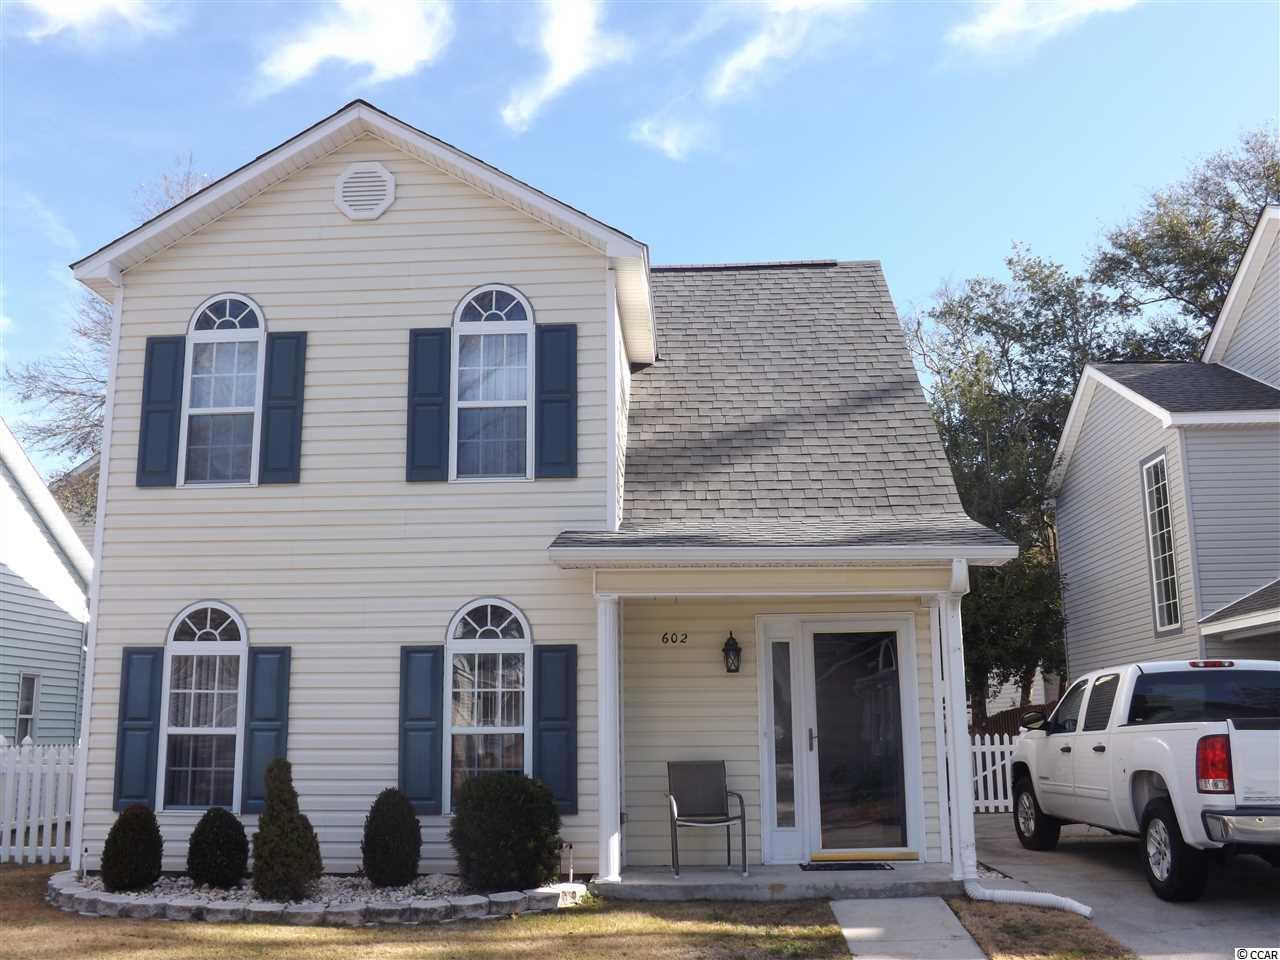 This traditional style home is well maintained and located in a quiet neighborhood. The seller is the original owner. The roof was recently replaced(11/18) and there is NO HOA fee. The home is not in a flood zone.  The finishes in the living room include crown molding and a chair rail.  The back of the house has a spacious Carolina Room with plenty of natural light. A large master bedroom with a walk-in closet, with crown molding, and a full bath are located on the first floor.  The upstairs has two spacious bedrooms that include walk in closets, with a very large Jack and Jill bath that inludes two sinks and a tub/shower.  The 2nd upstairs bedroom has a spacious owner's closet that could be another oversized walk-in closet. You can be on the beautiful beach or Main Street in Ocean Drive within five minutes.  Upgraded Hunter ceiling fans have been installed throughout the home; kitchen contains an electric stove, new microwave, dishwasher, refigerator and garbage disposal.  Remaining furniture may be purchased upon negotiations. The backyard and sideyard are enclosed with vinyl fencing.  The driveway can accommodate two cars.  A sprinkler sytem has also been installed. The HVAC sytem is 4 years old, electric water heater is 3 years old and washer/dryer are 3 years old.  The home is conveniently located to shopping, dining, golf and many attractions in North Myrtle Beach and Ocean Drive Beach. Square footage is approximate.  Have buyers and buyer agents verify.